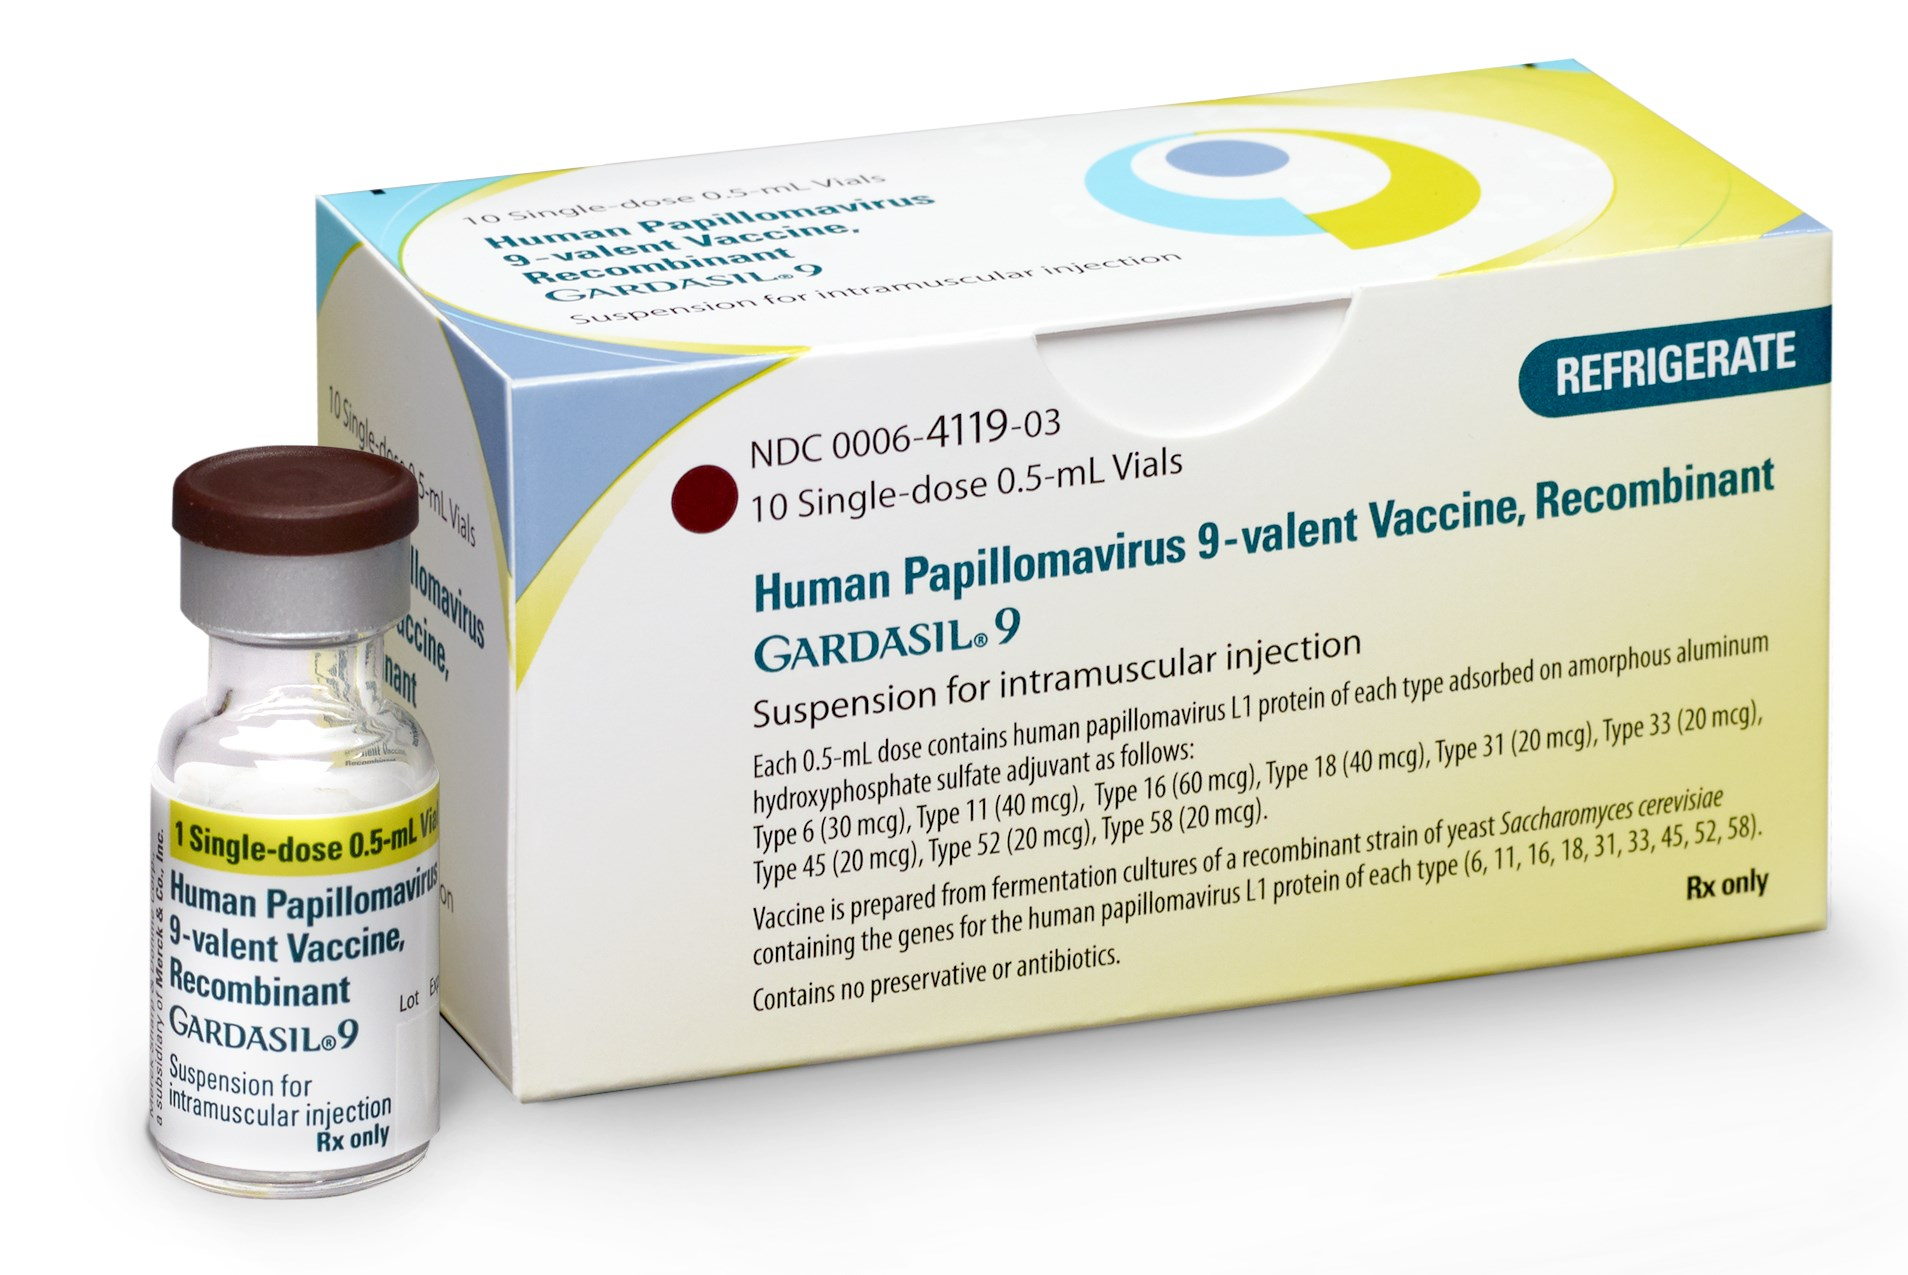 Gardasil 9 Approved for Use in Women and Men 27 Through 45 Years Old